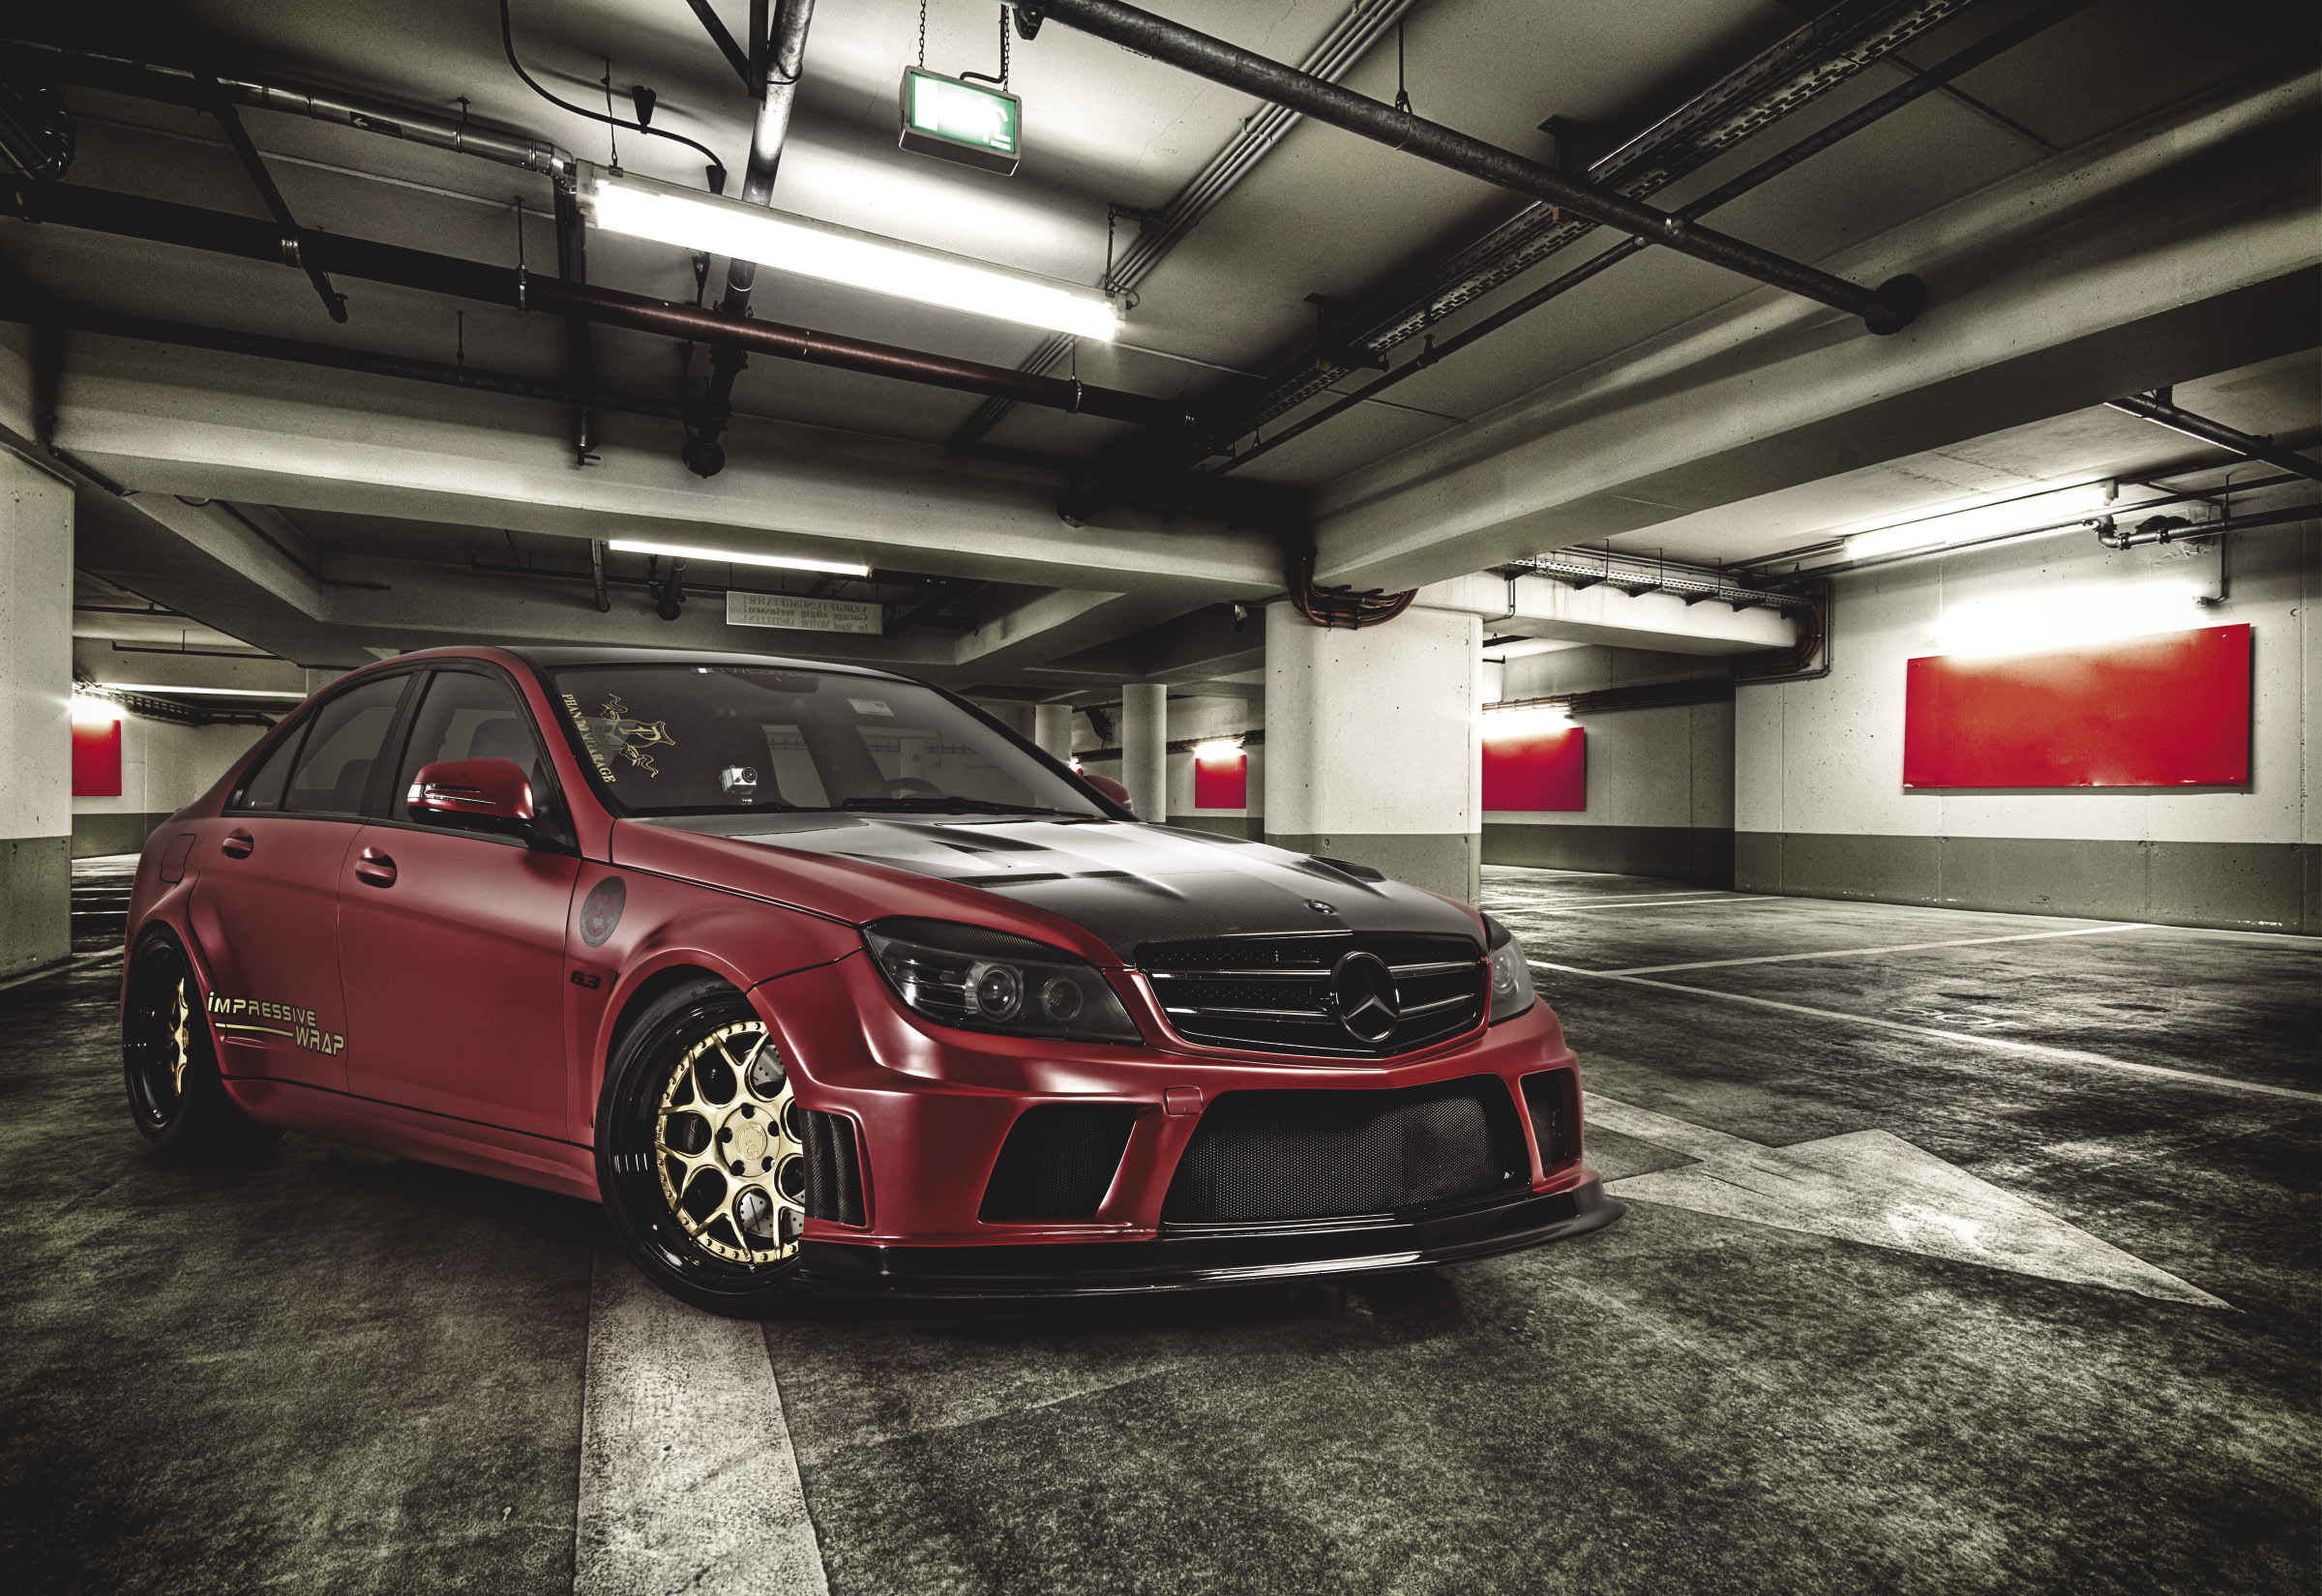 OE TUNING C63 ON THE COVER OF PASMAG ??? - MBWorld org Forums